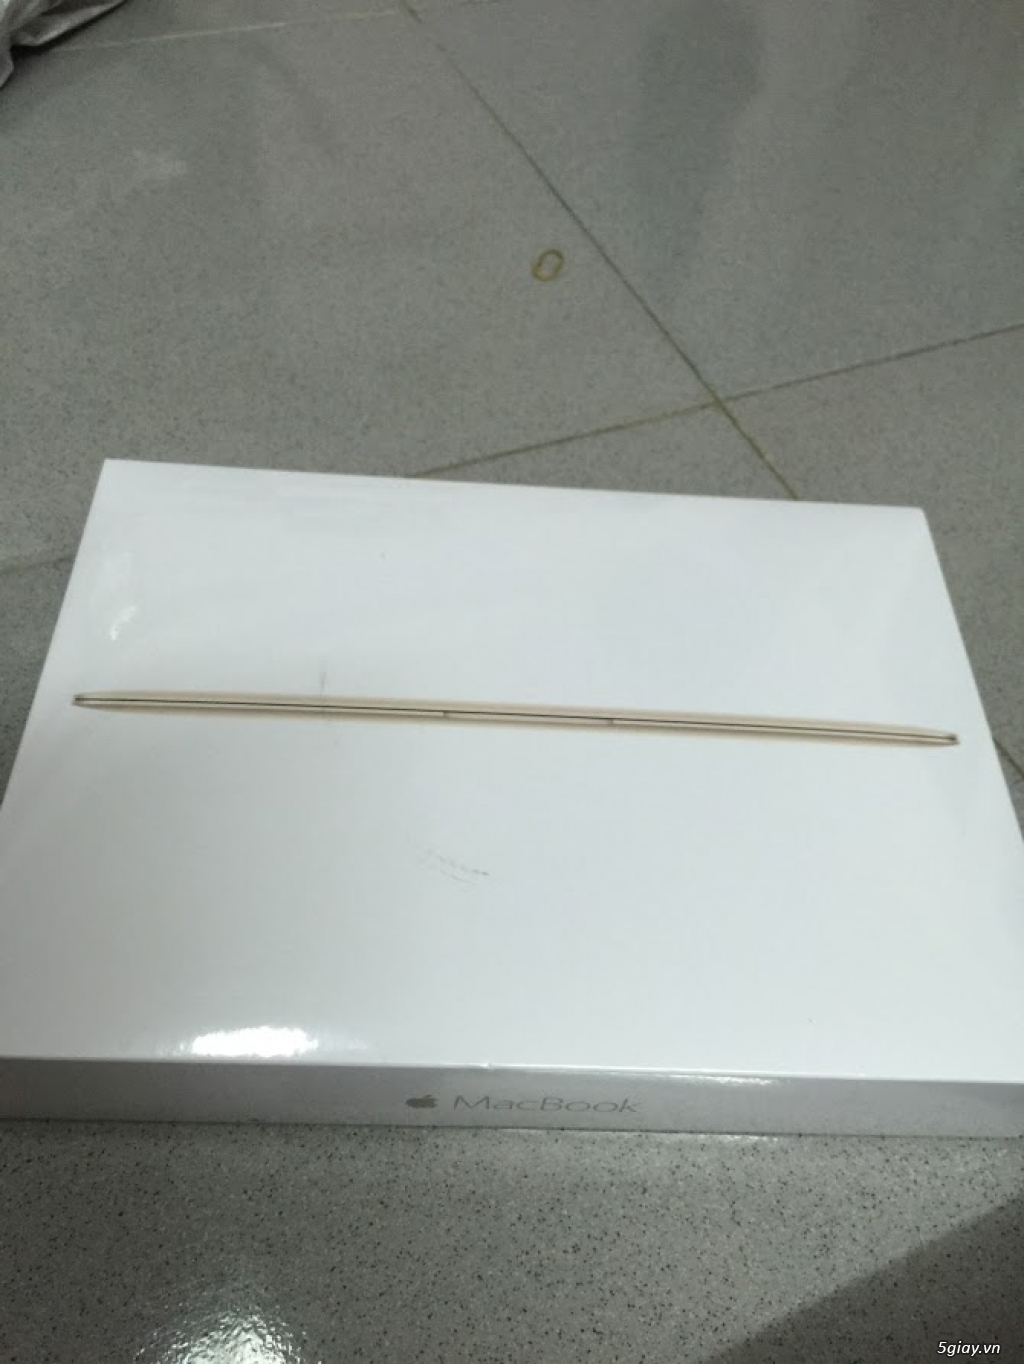 Macbook 12 gold brand new early 2016  mk4m2ll/a